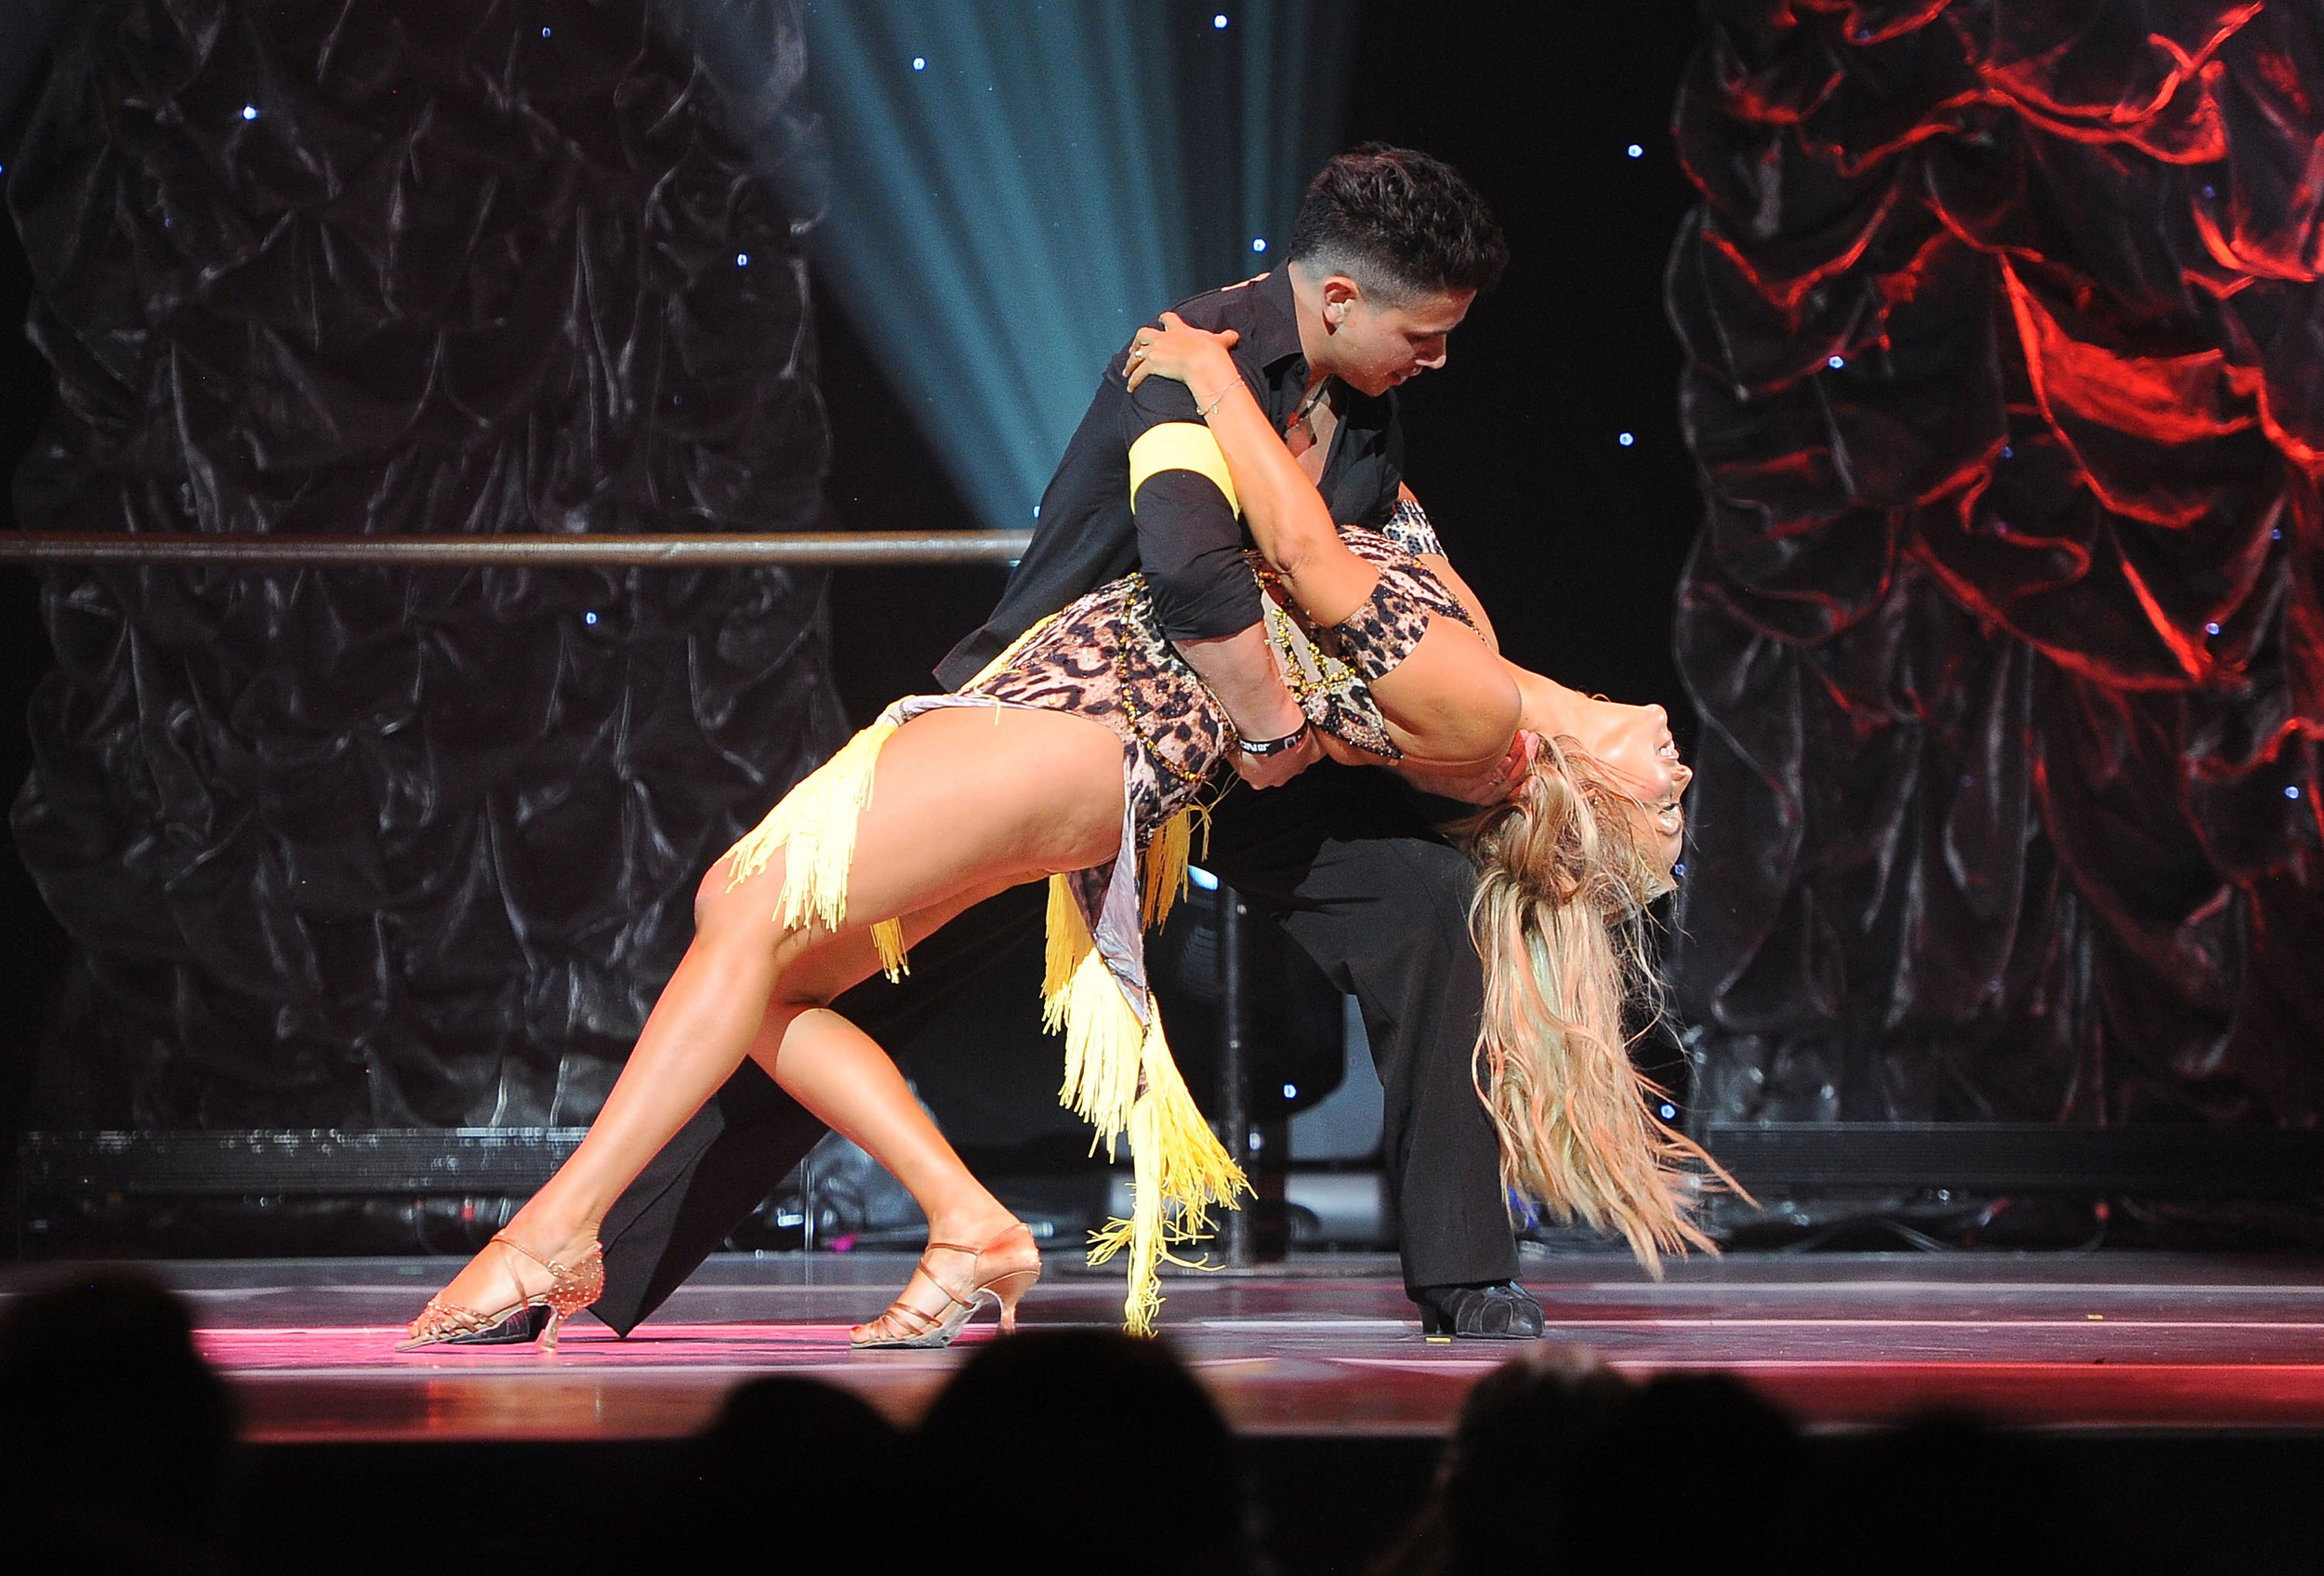 Dancer Jonathan Platero and Elizabeth Berkley performonstage at the 5th Annual Celebration of Dance Gala presented By The Dizzy Feet Foundation at Club Nokia. (All photosby Angela Weiss/Getty Images for Dizzy Feet Foundation.)